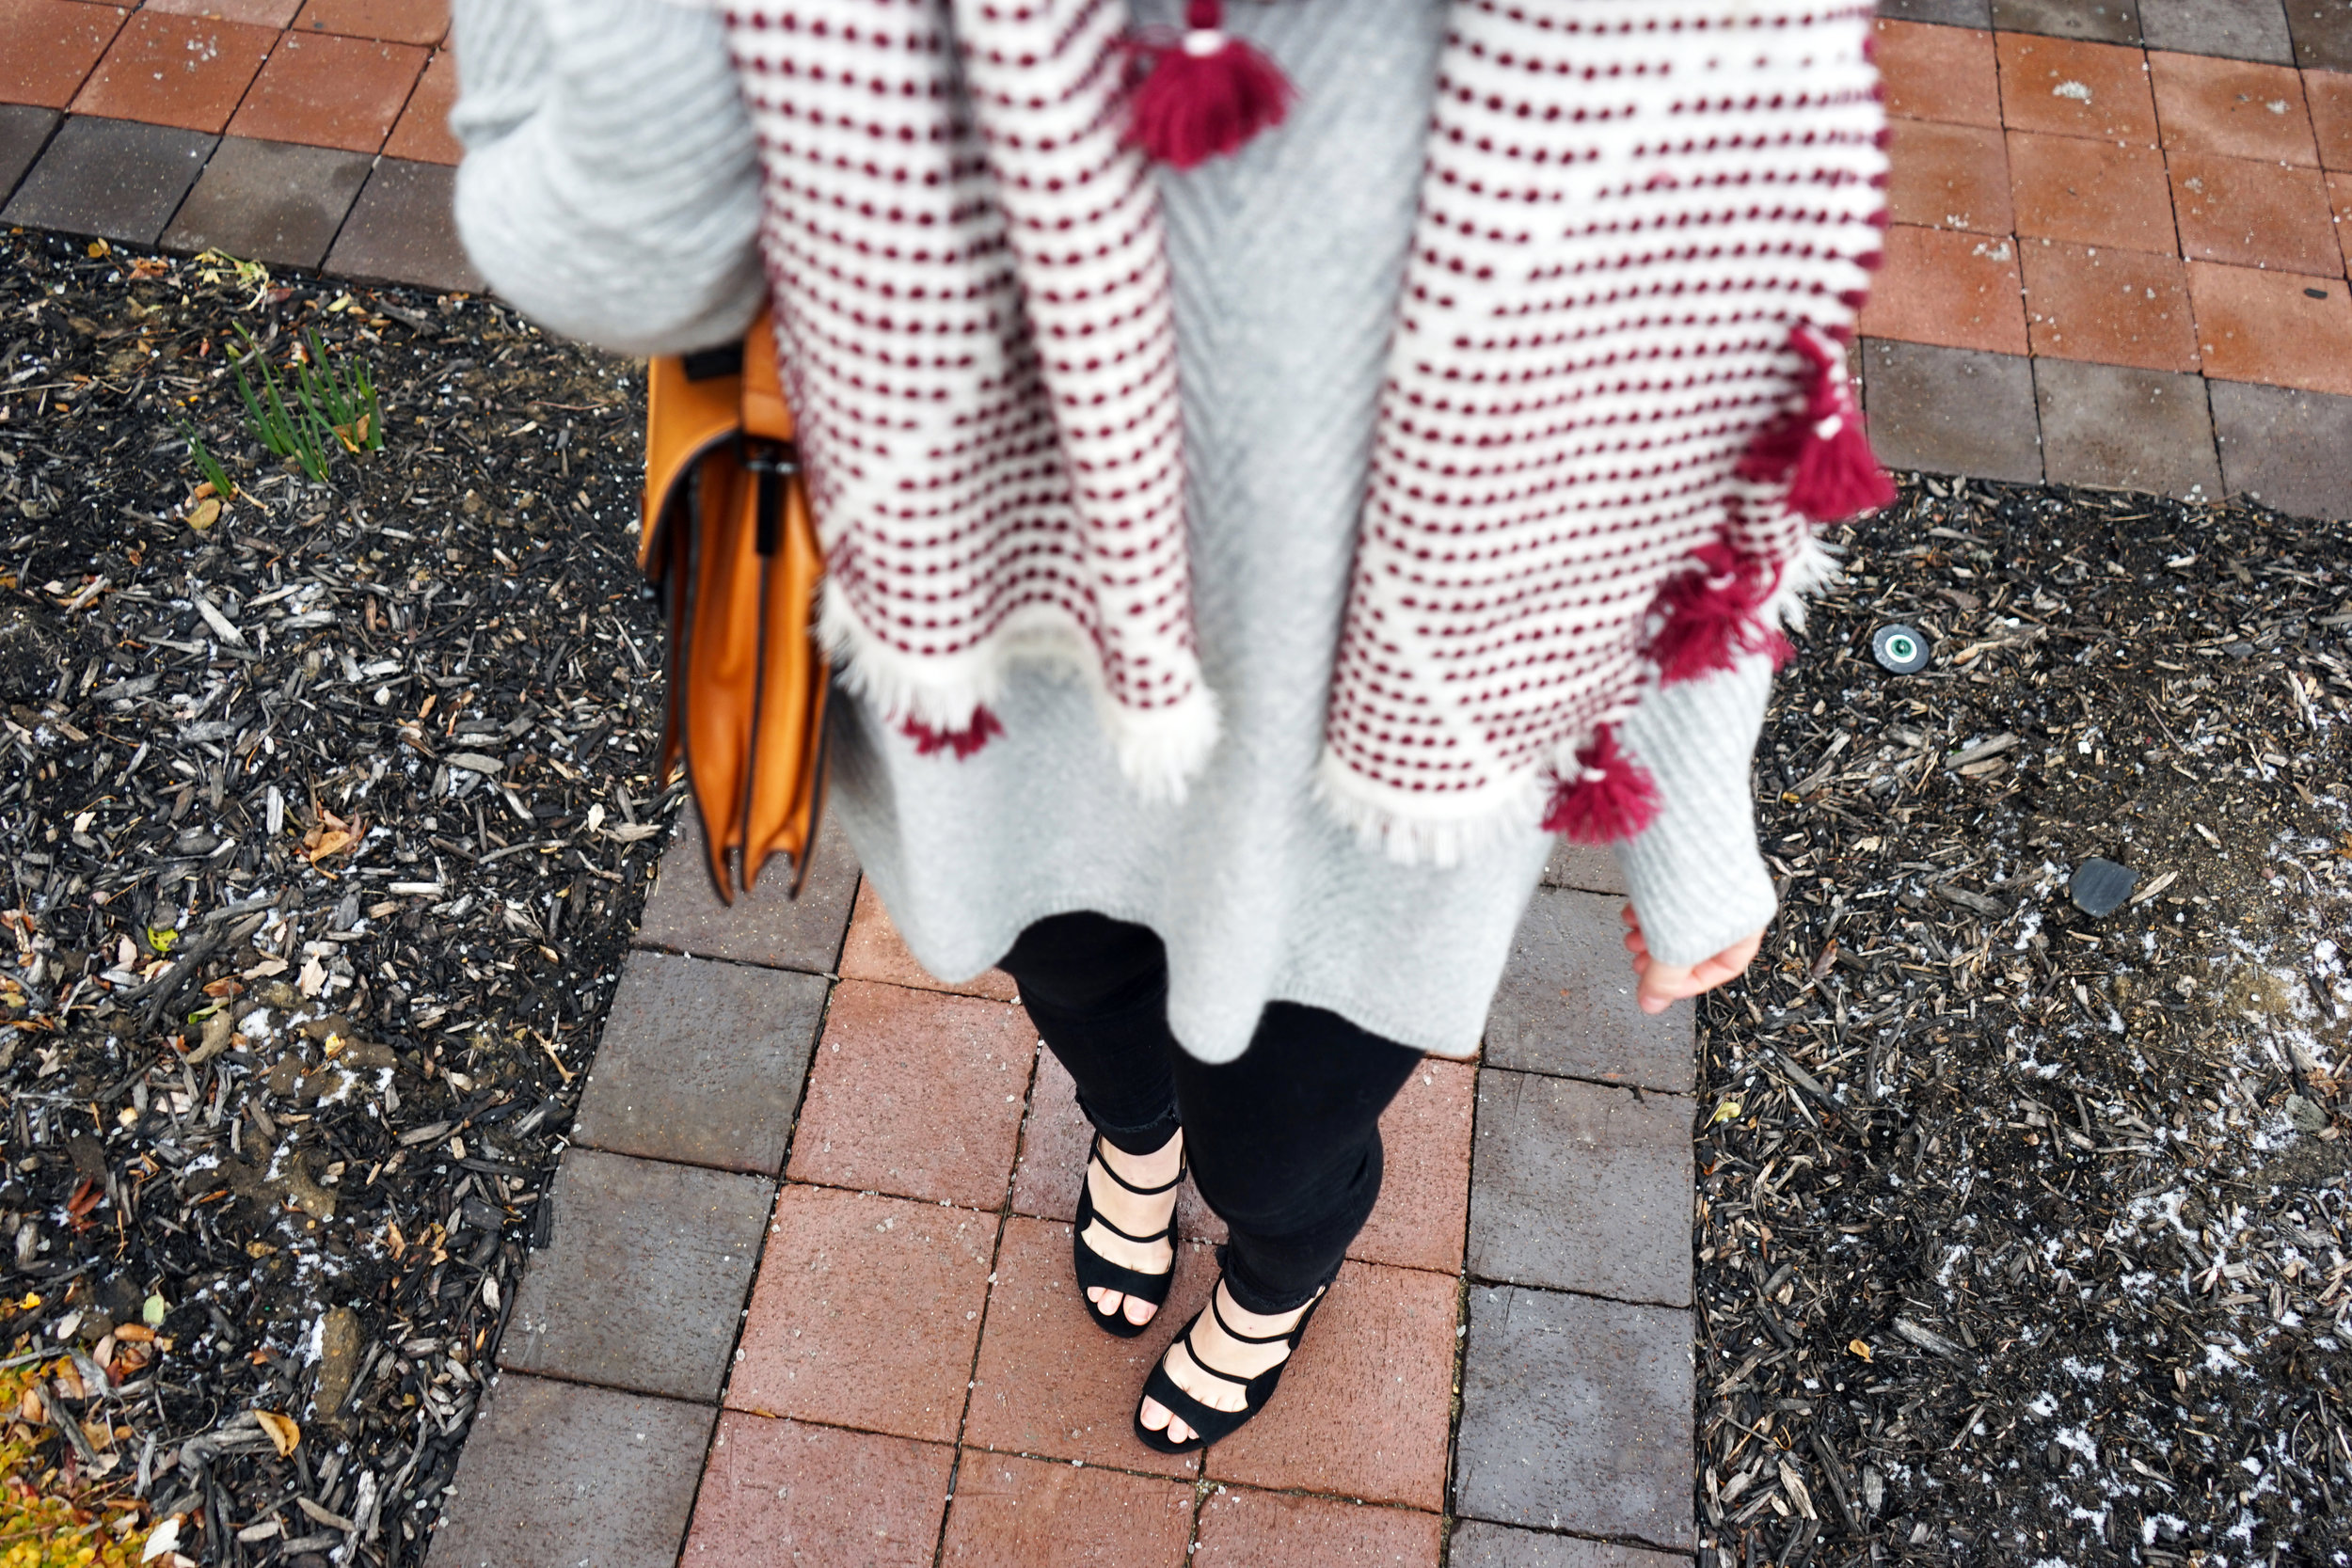 Maggie a la Mode - Madewell Diamond-Dash Tassel Scarf, Nordstrom Collection Chevron Cashmere Sweater, AG High-Waisted Skinny Jeans, Ann Taylor Ashton Suede Scalloped Heels, Loeffler Randall Rider Bag